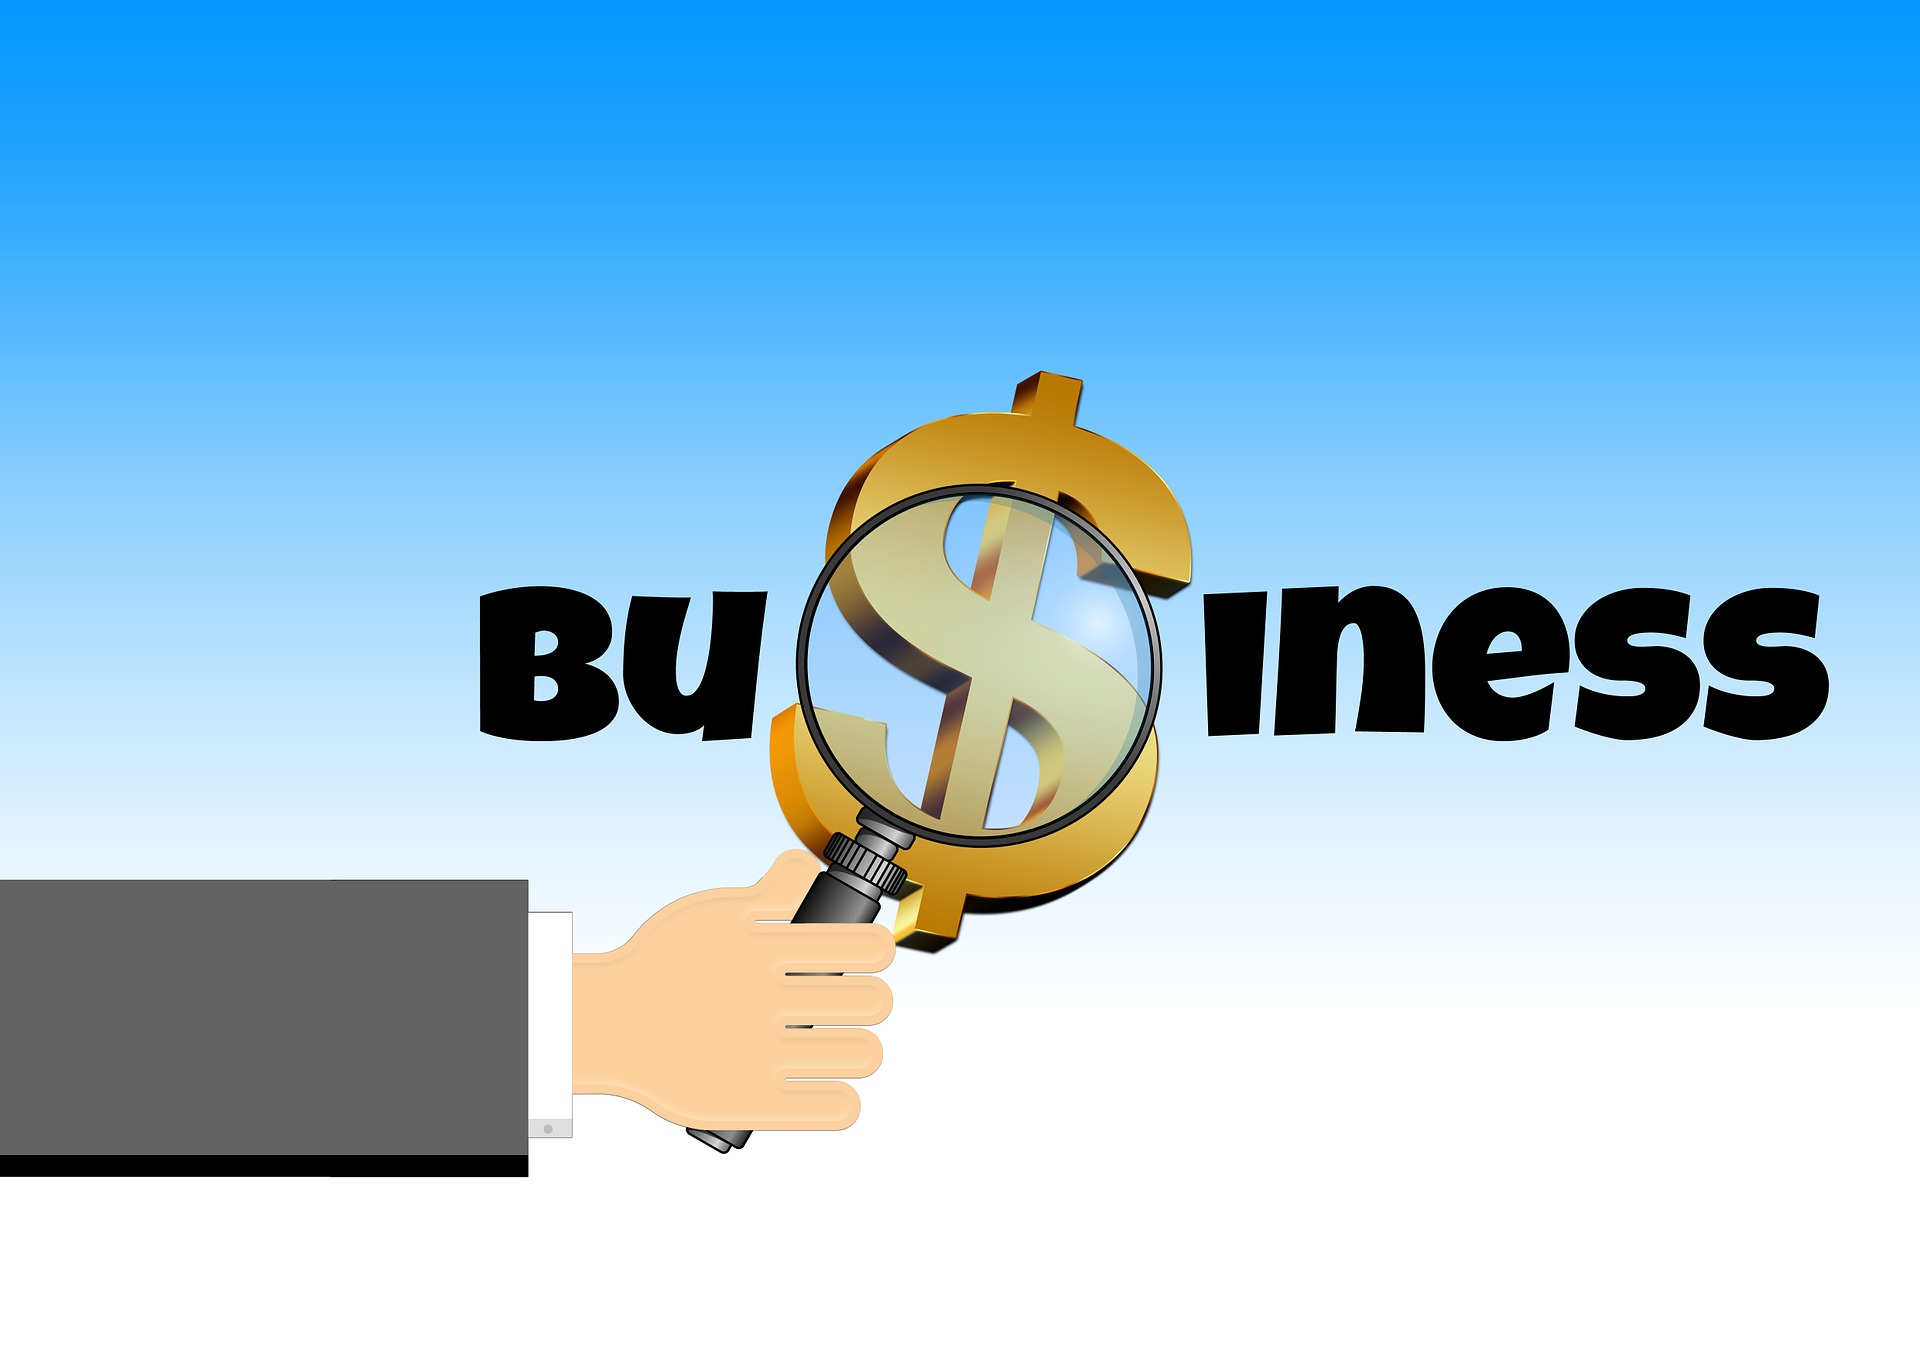 Business001